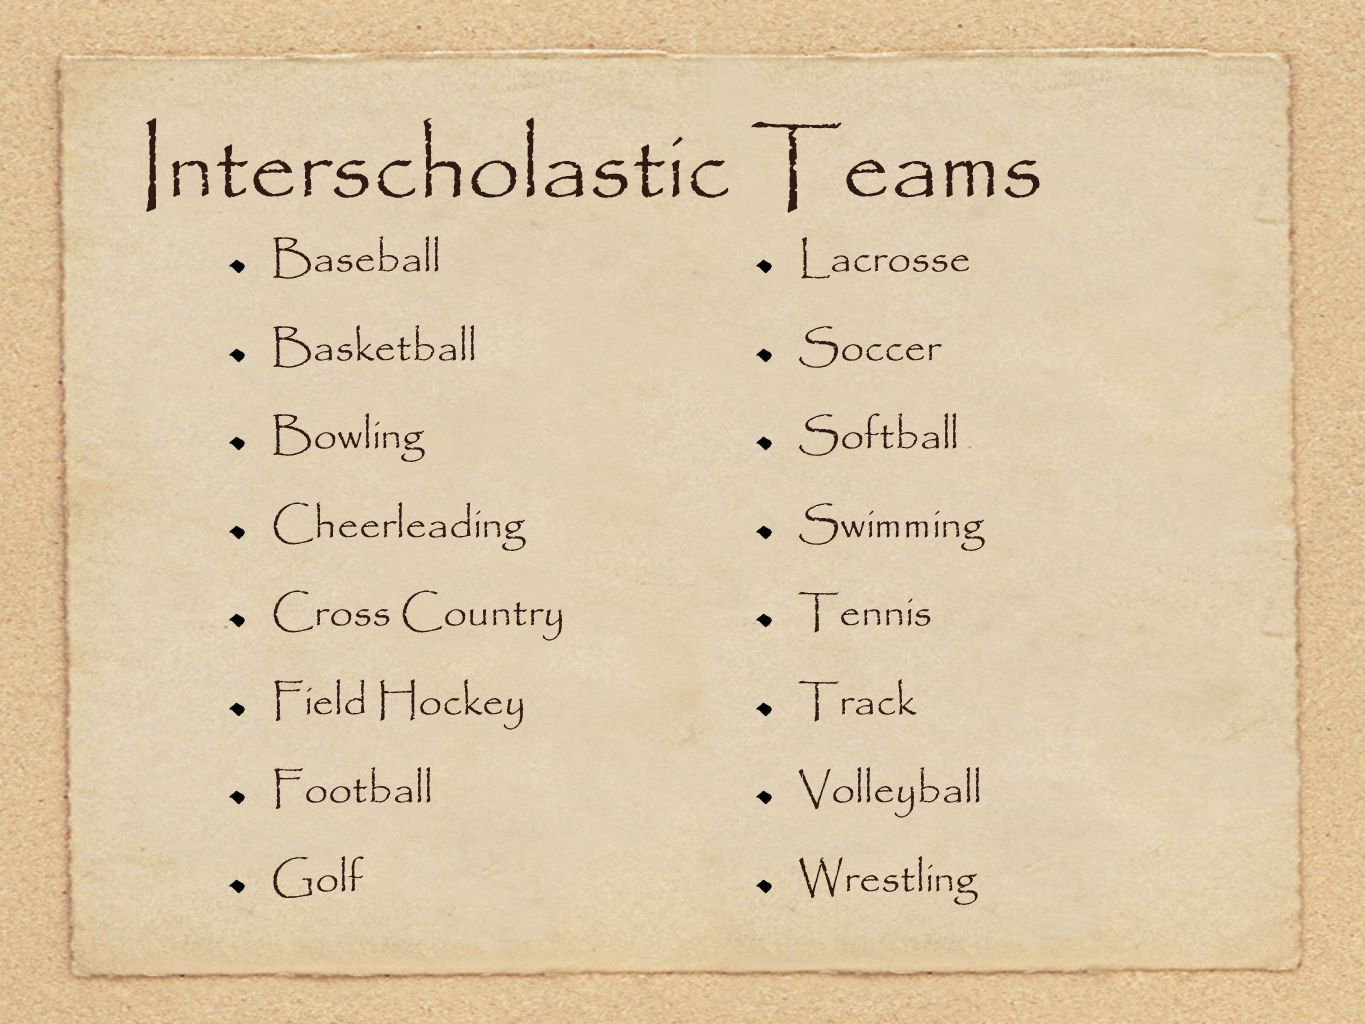 Interscholastic Teams